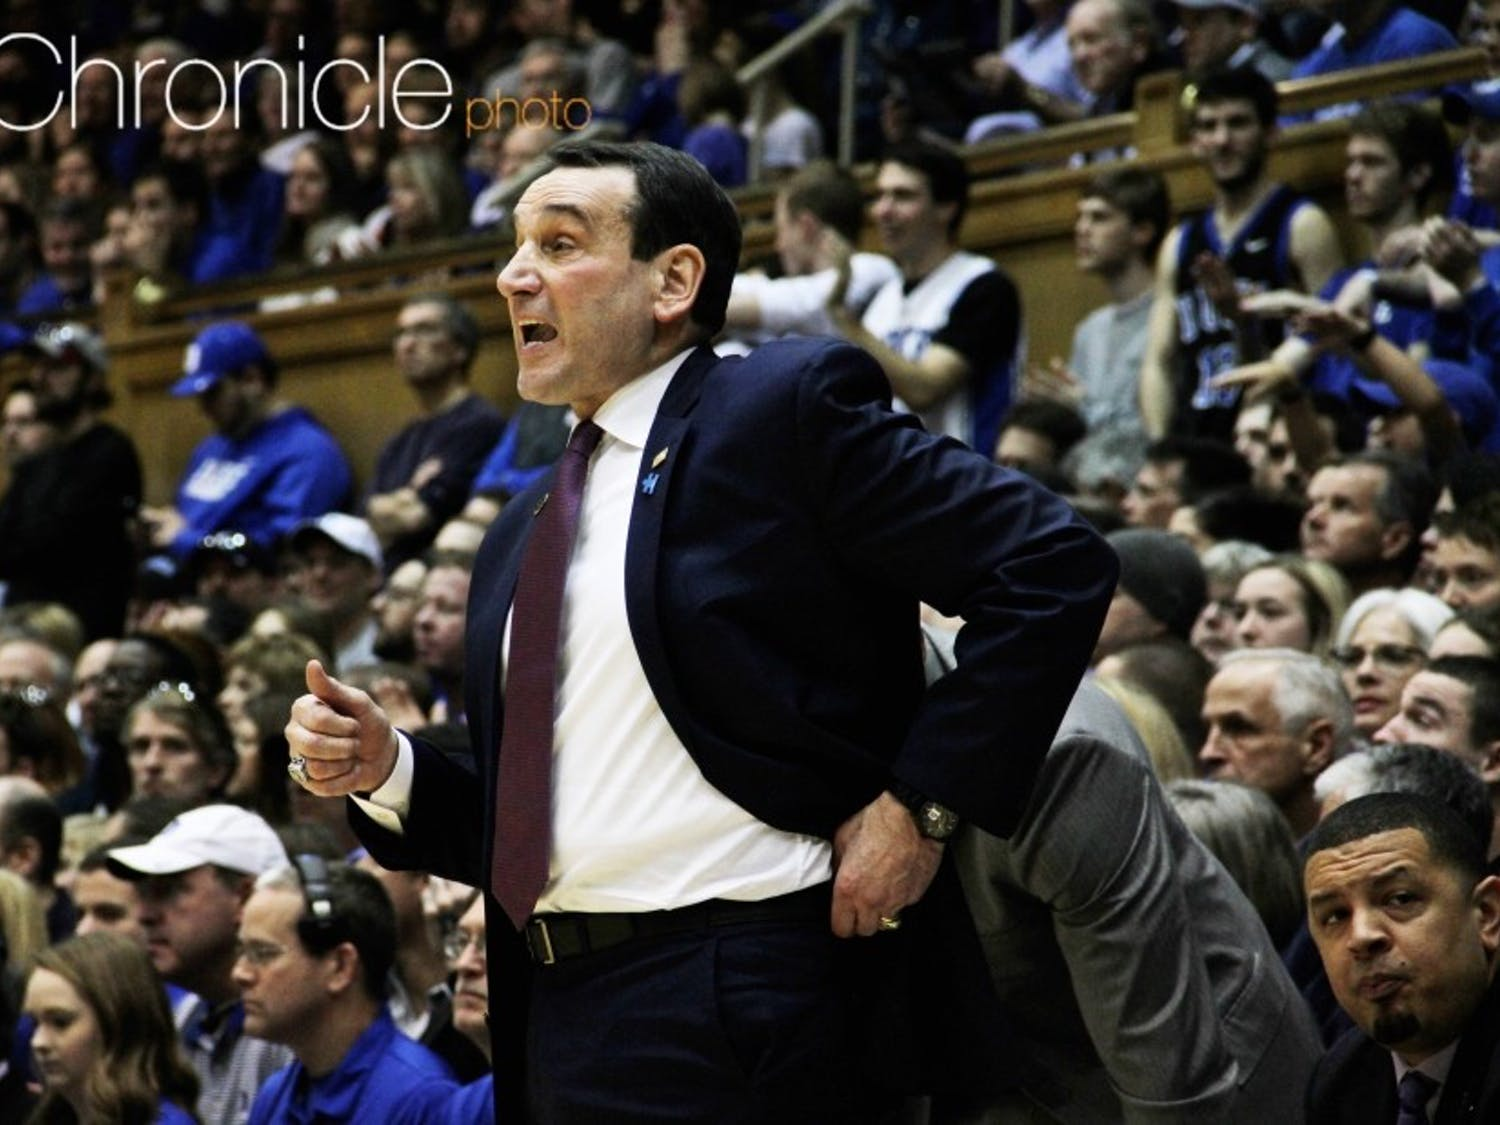 Mike Krzyzewski will lead his team to the PK80 tournament during Thanksgiving next year to face some of the top competition in the nation.